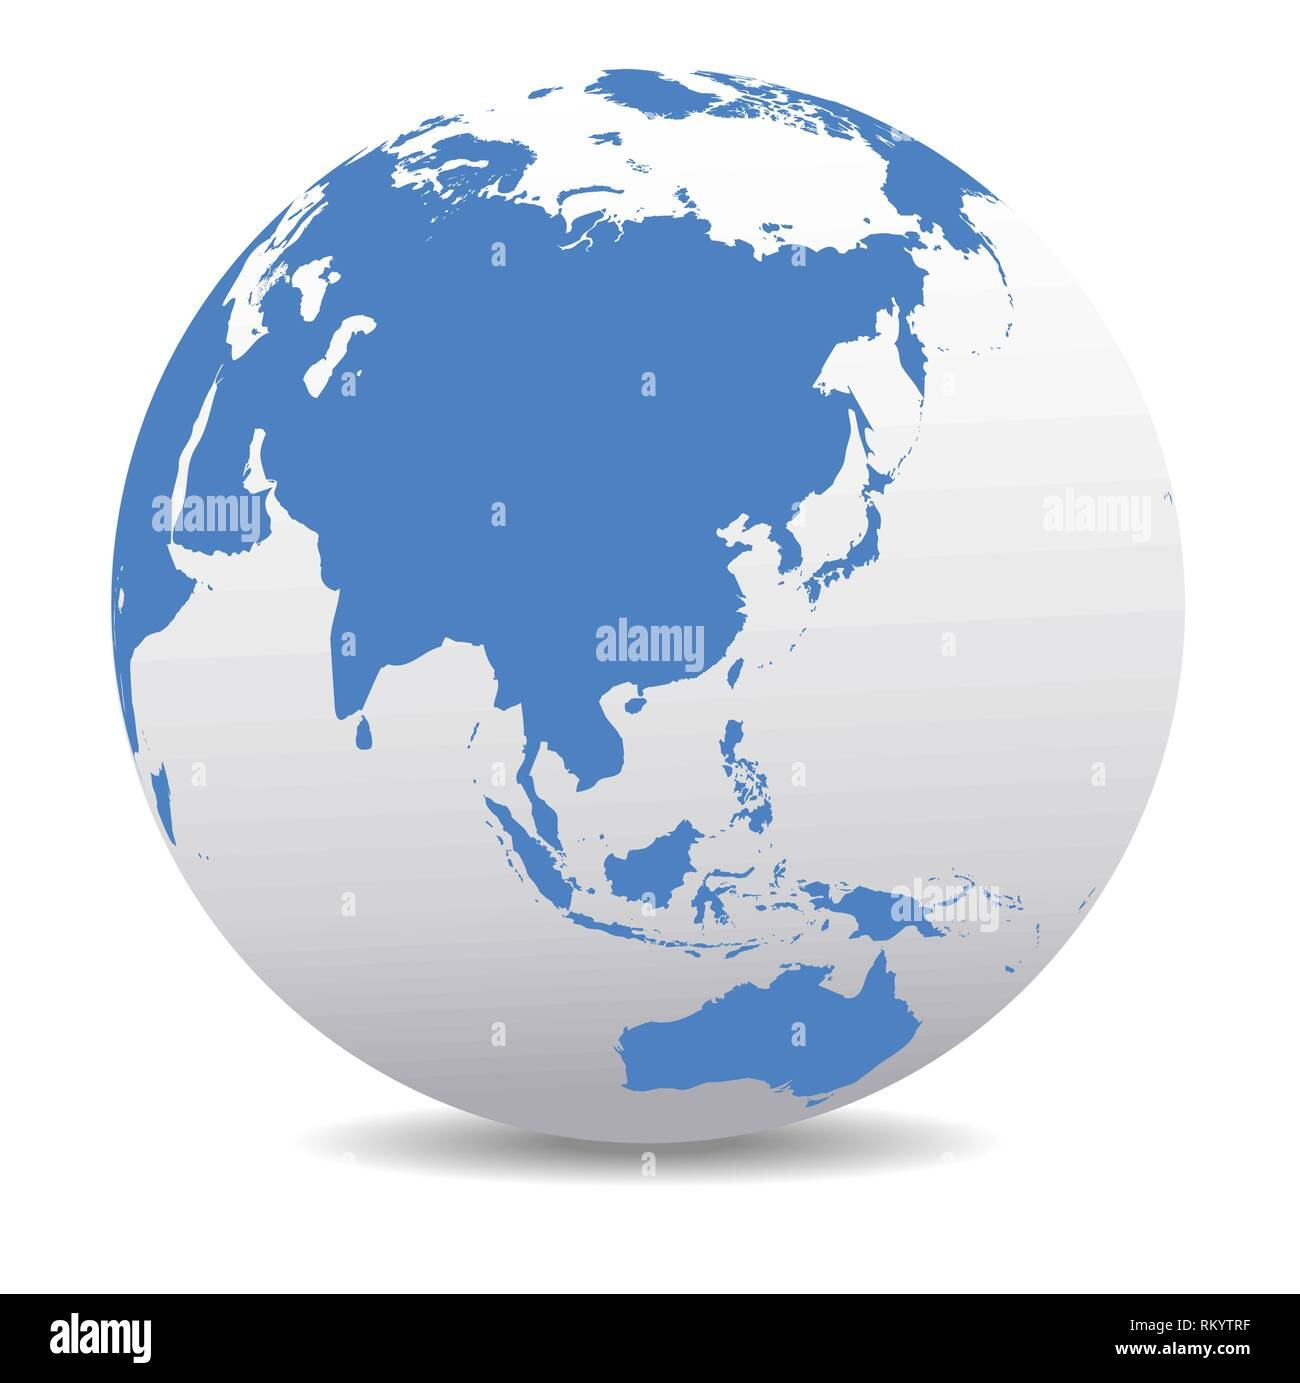 China, Japan, Malaysia, Thailand, Indonesia, Global World - Stock Vector